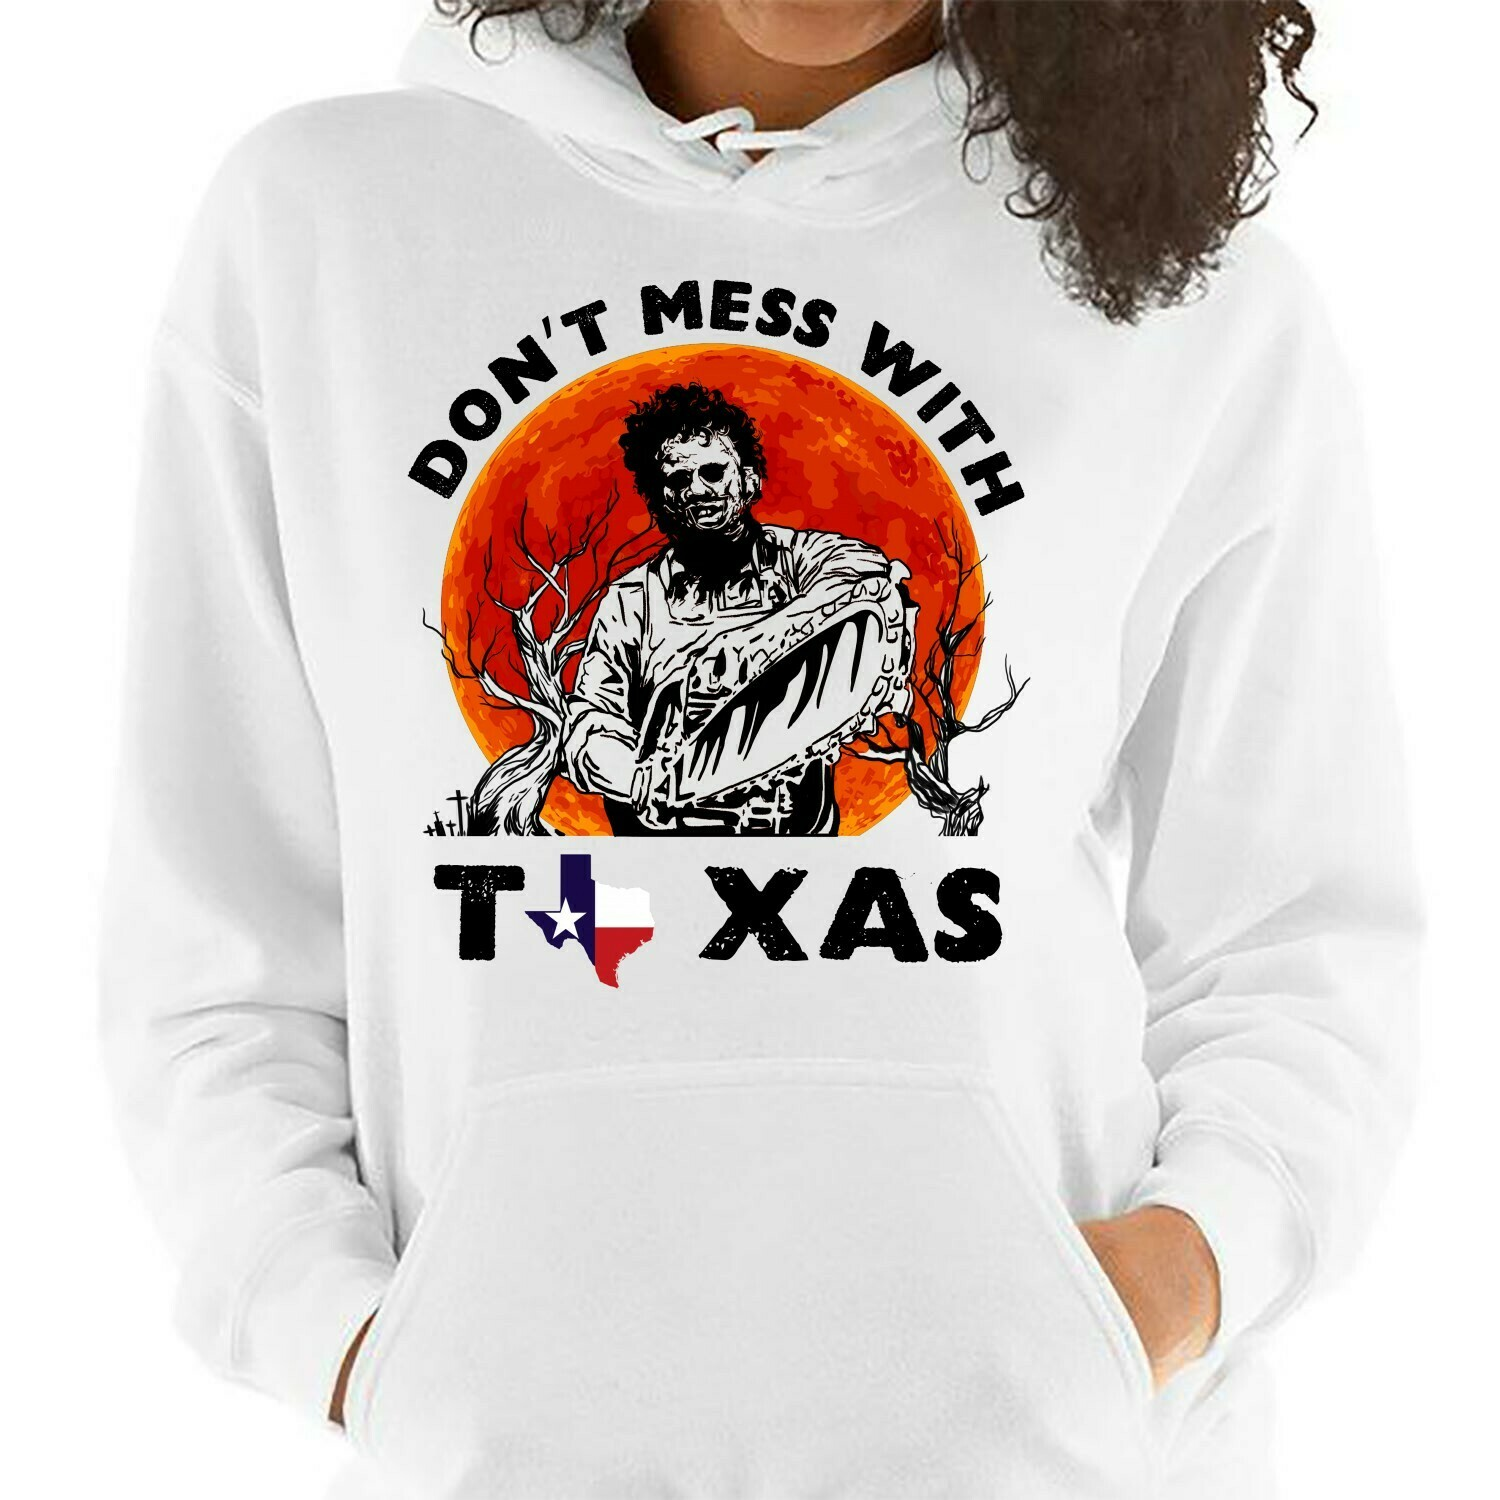 Texas Chainsaw Massacre Don't Mess With Texas,Devil Leatherface Friday The 13th Villains Halloween 80's Horror movie mashup T Shirt Long Sleeve Sweatshirt Hoodie Jolly Family Gifts